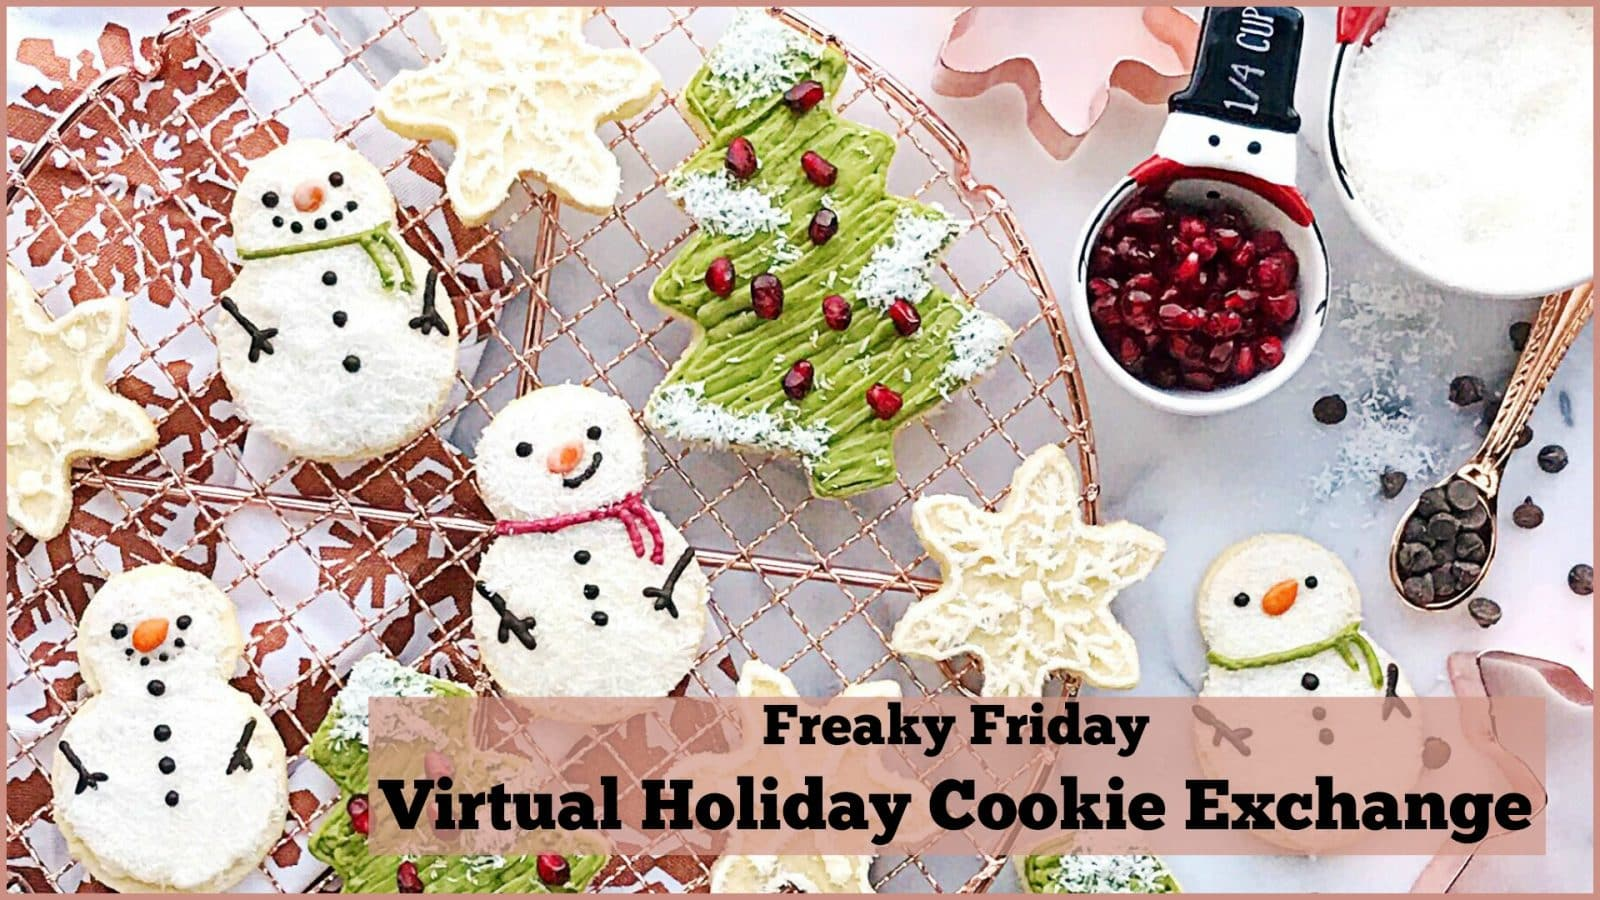 Freaky Friday Virtual Holiday Cookie Exchange image